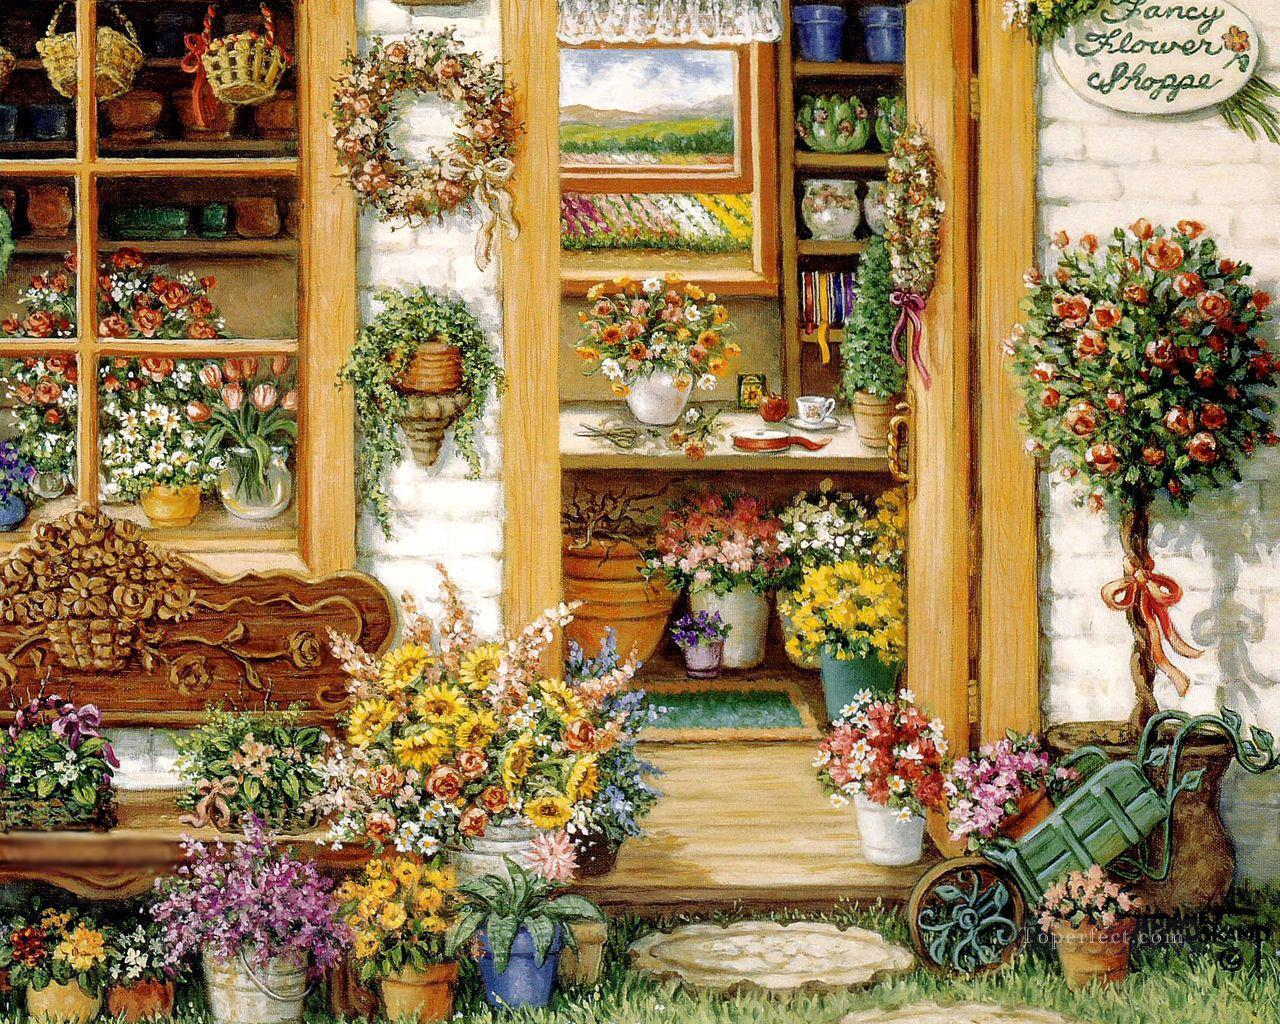 fancy flower shop garden Painting in Oil for Sale